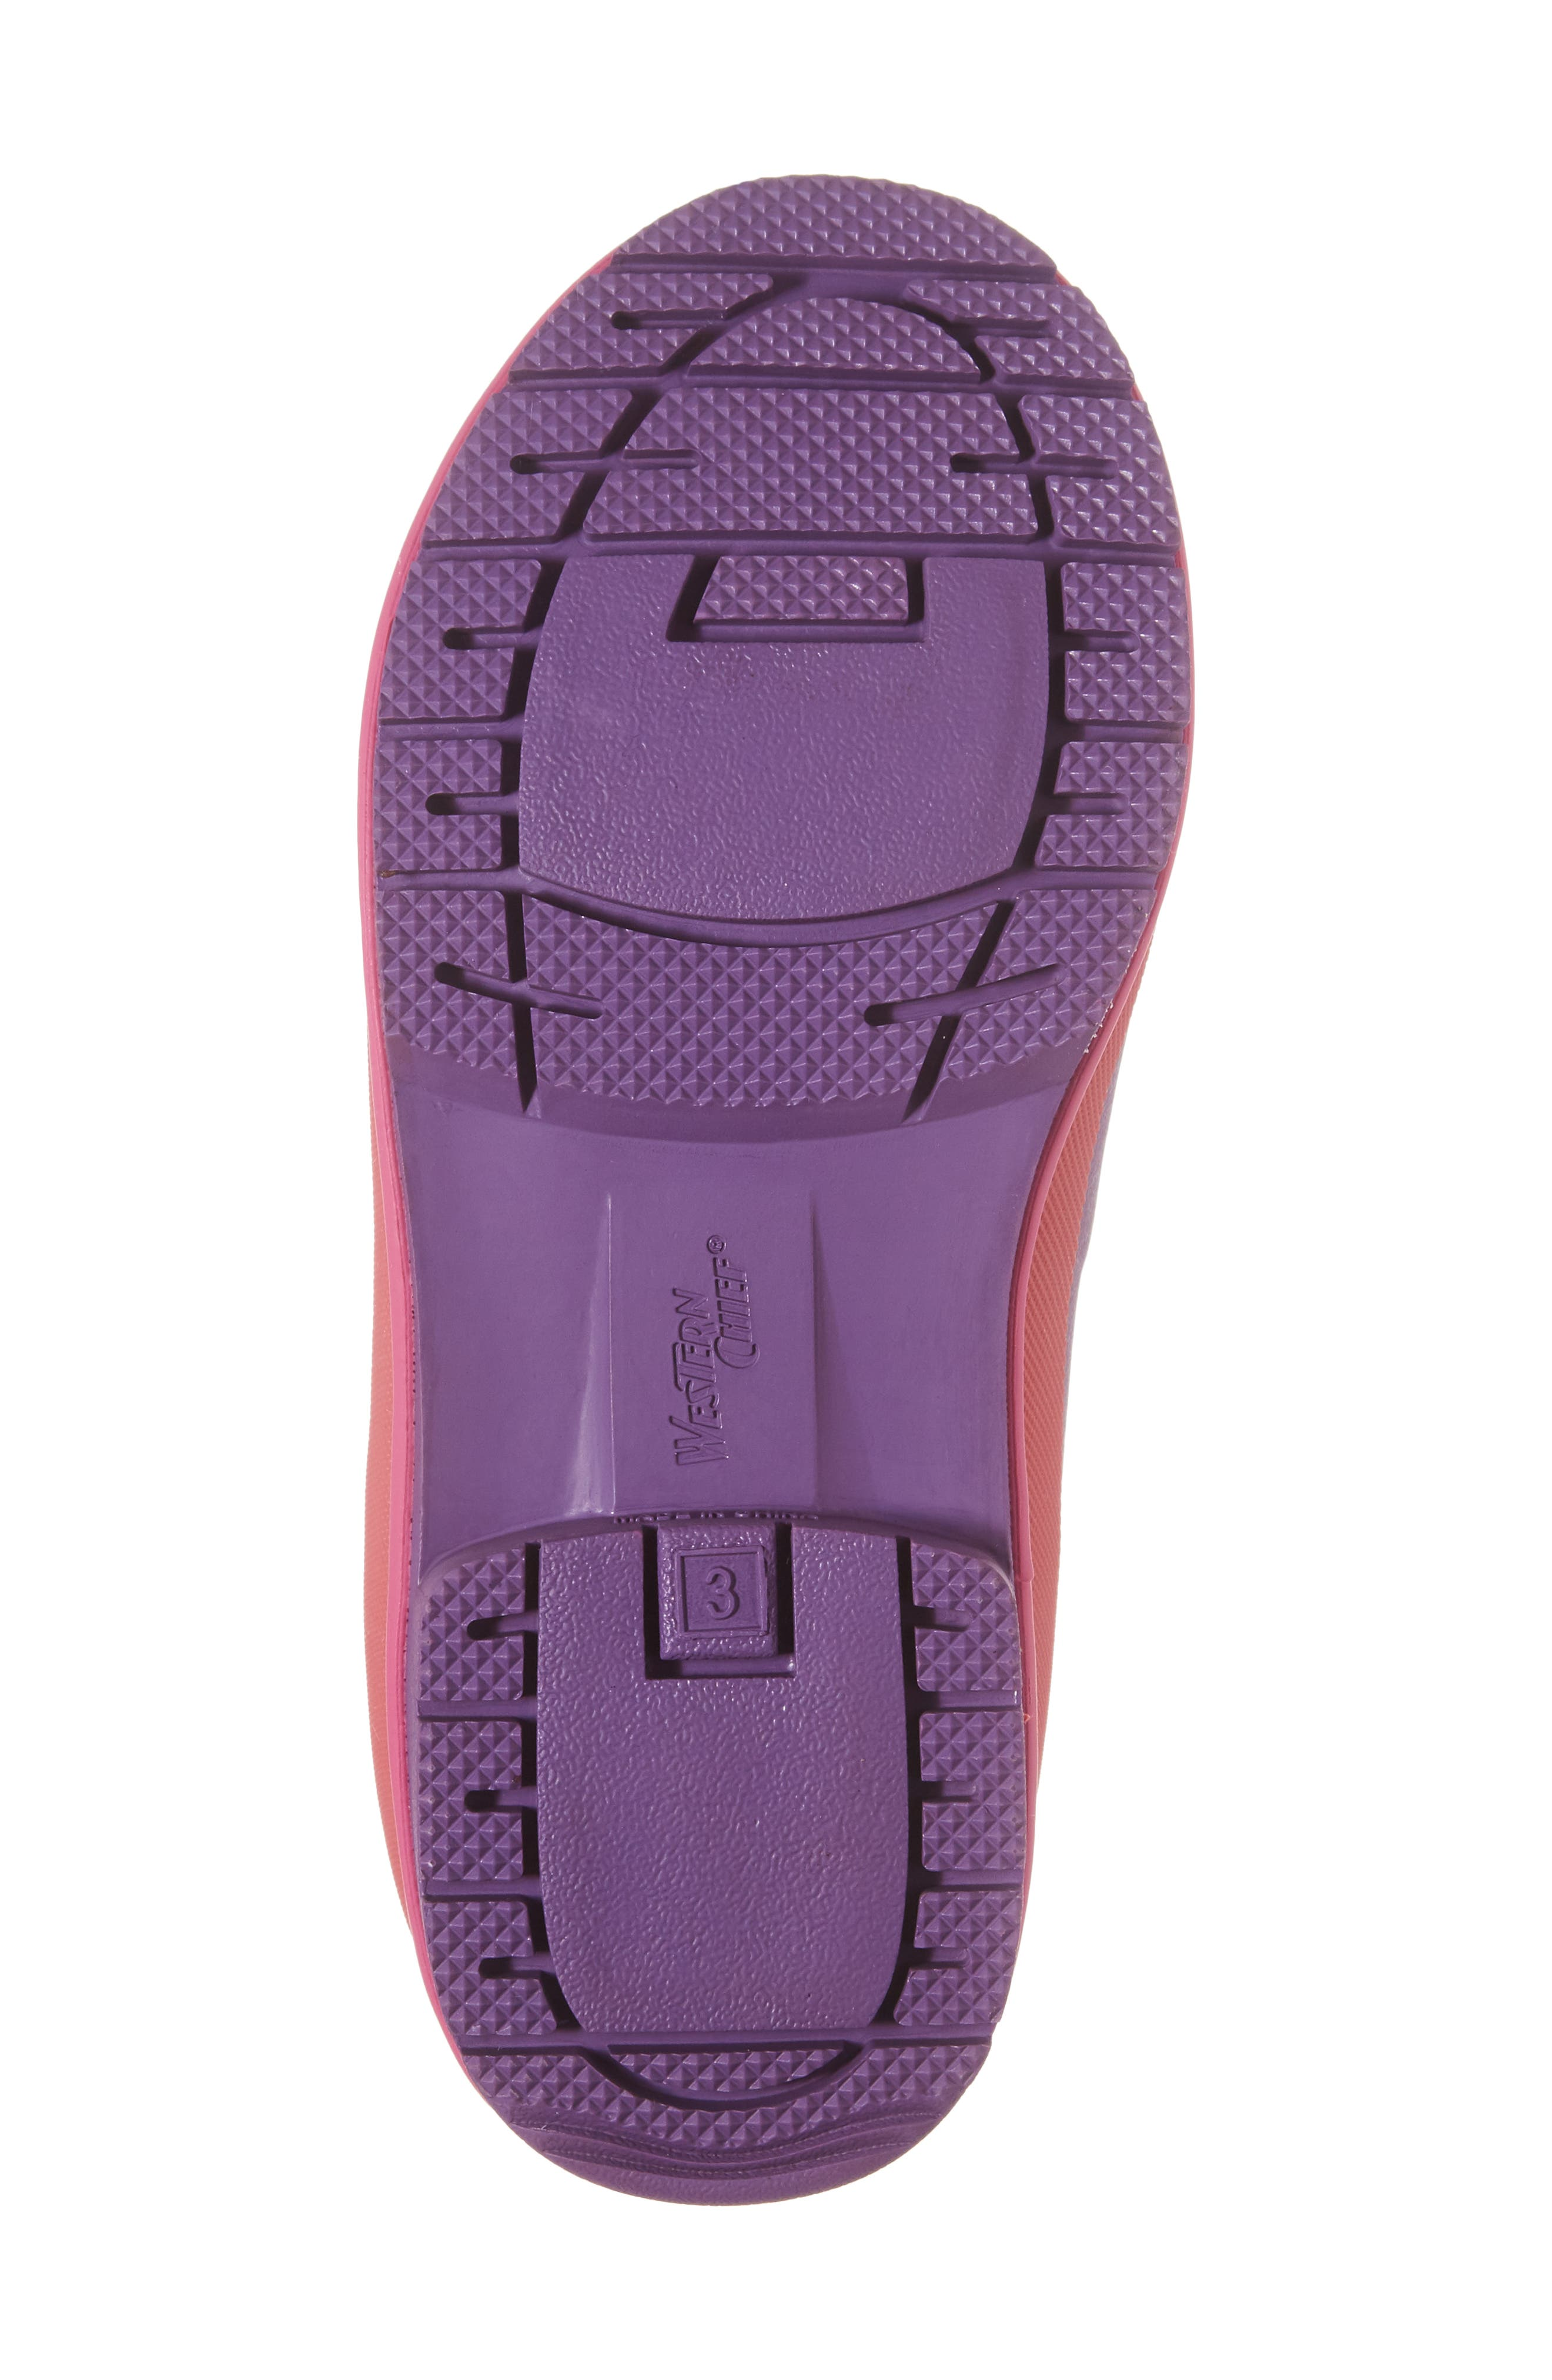 Neoprene Purple Snow Boot,                             Alternate thumbnail 6, color,                             511